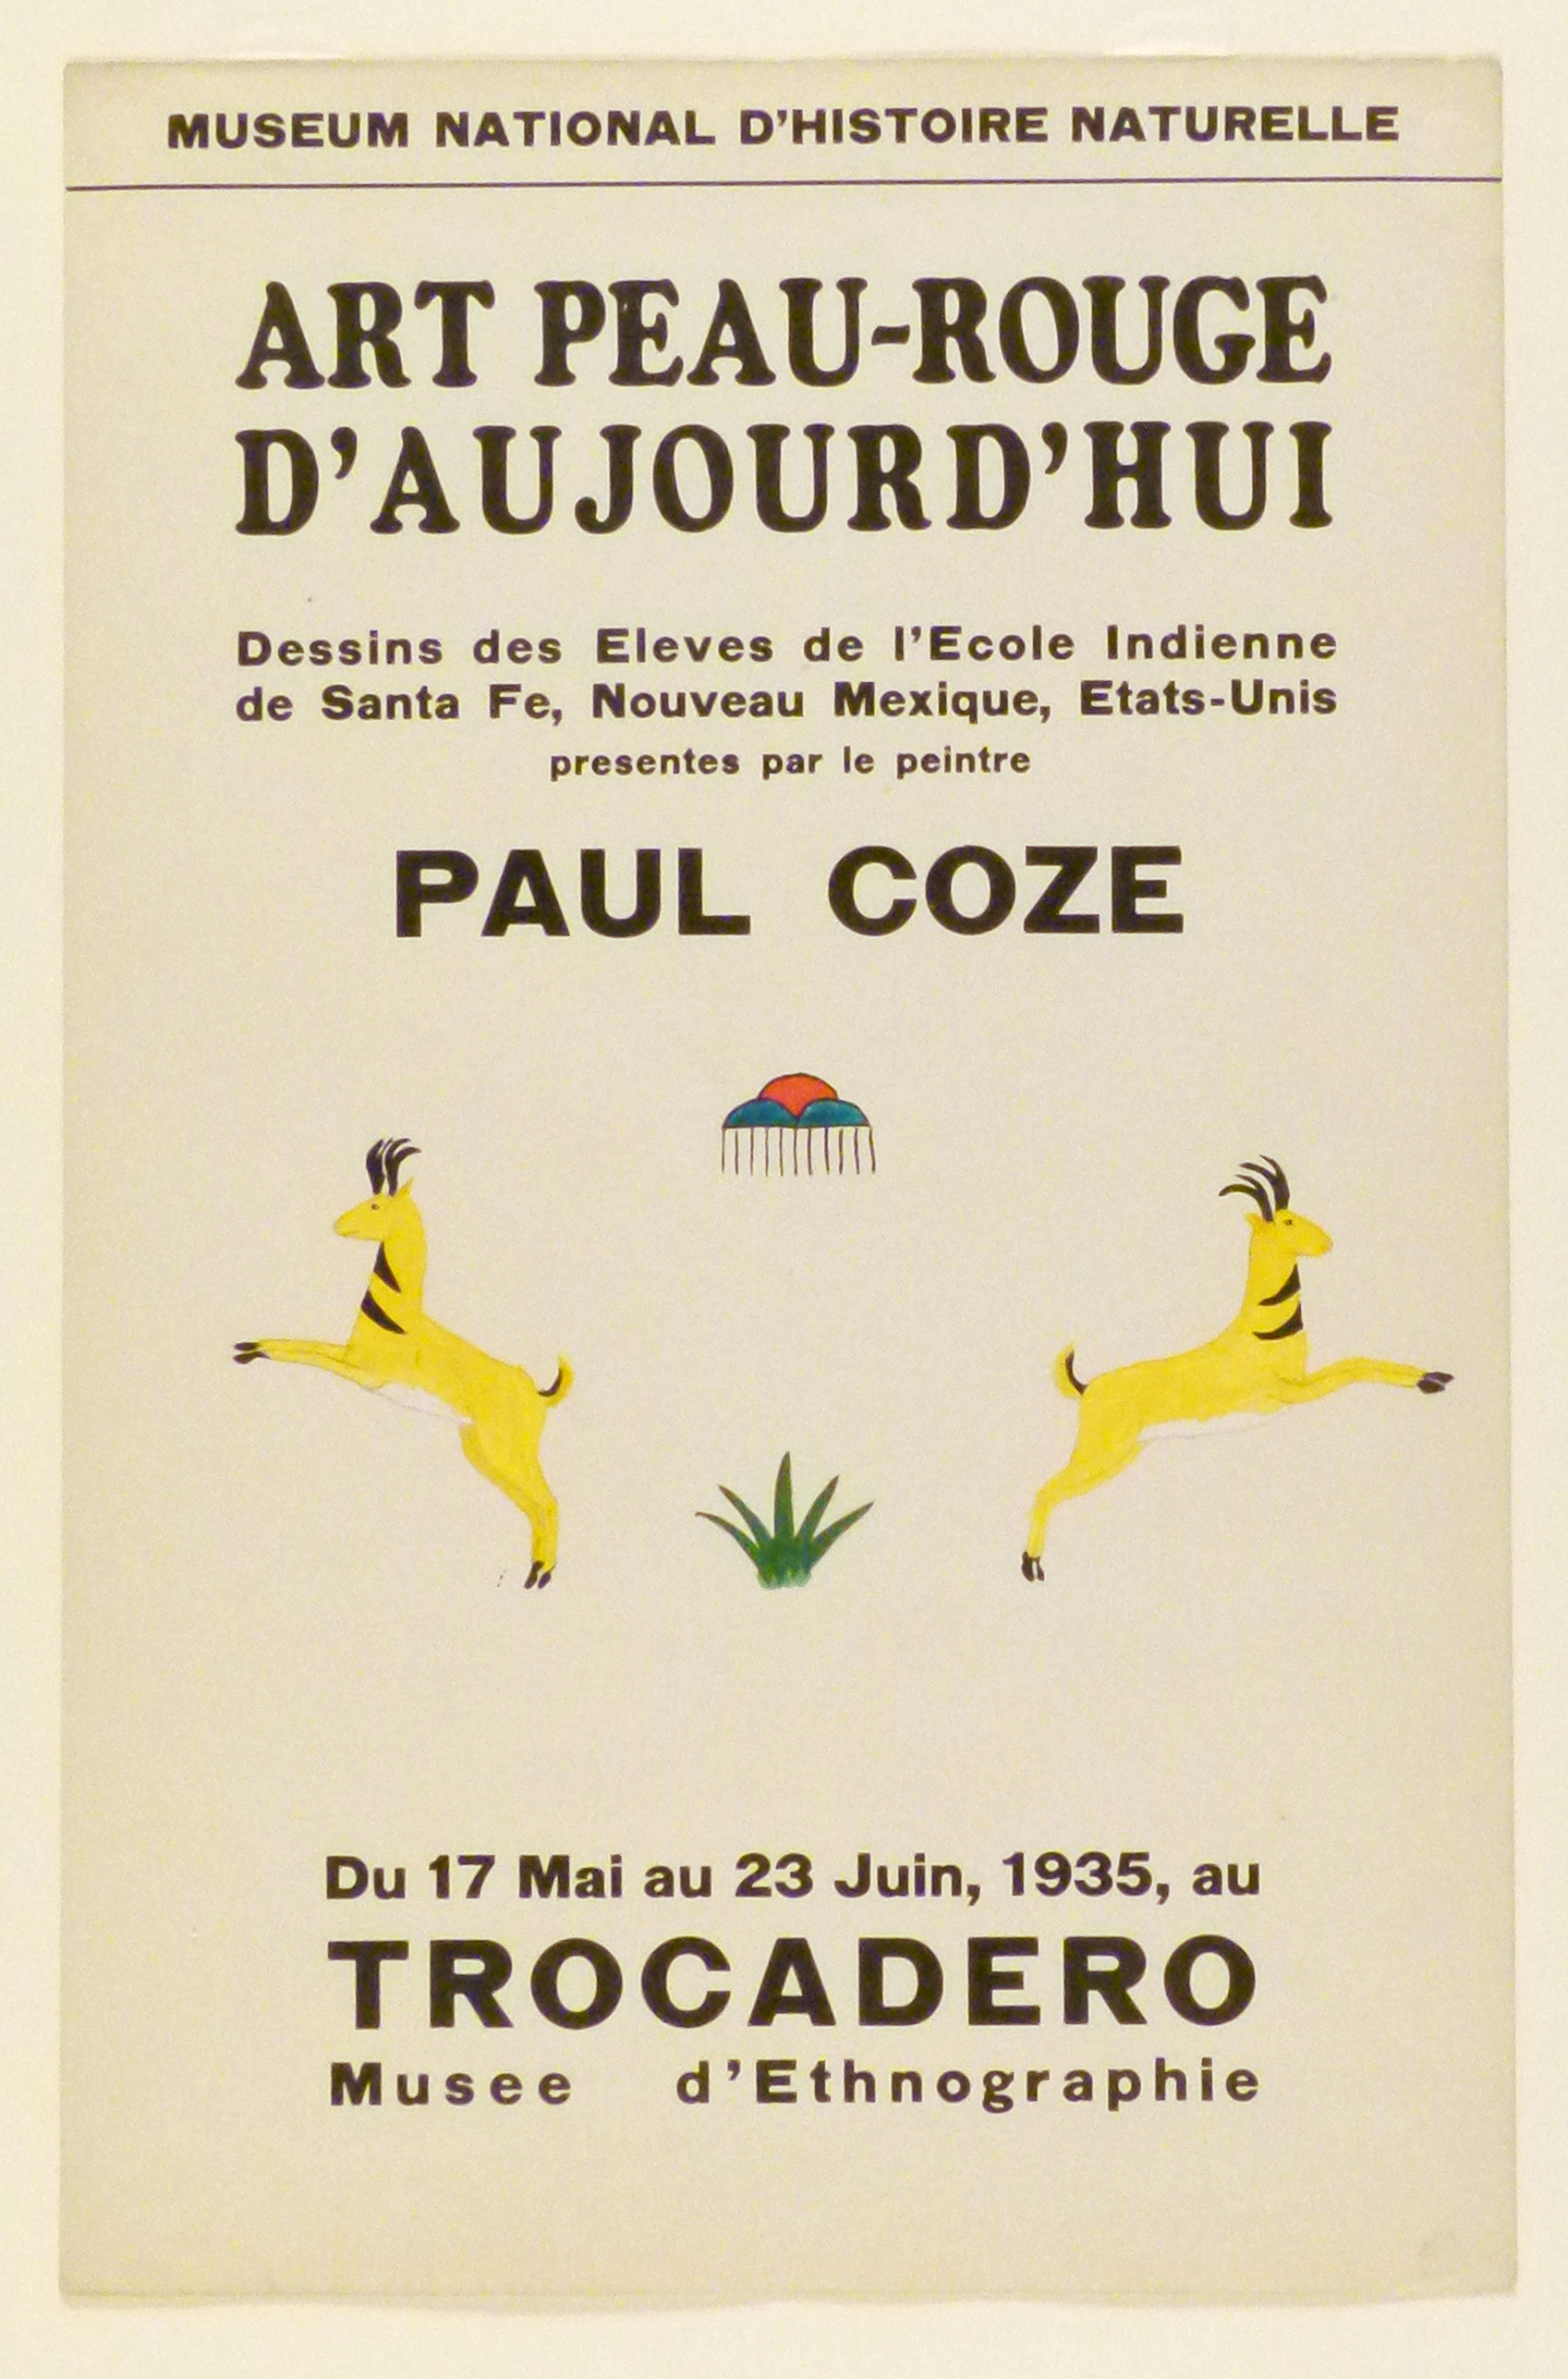 Art Exhibition Poster with painting of two identical yellow antelopes leaping away from each other. Between them at center is a green plant and a raincloud design.